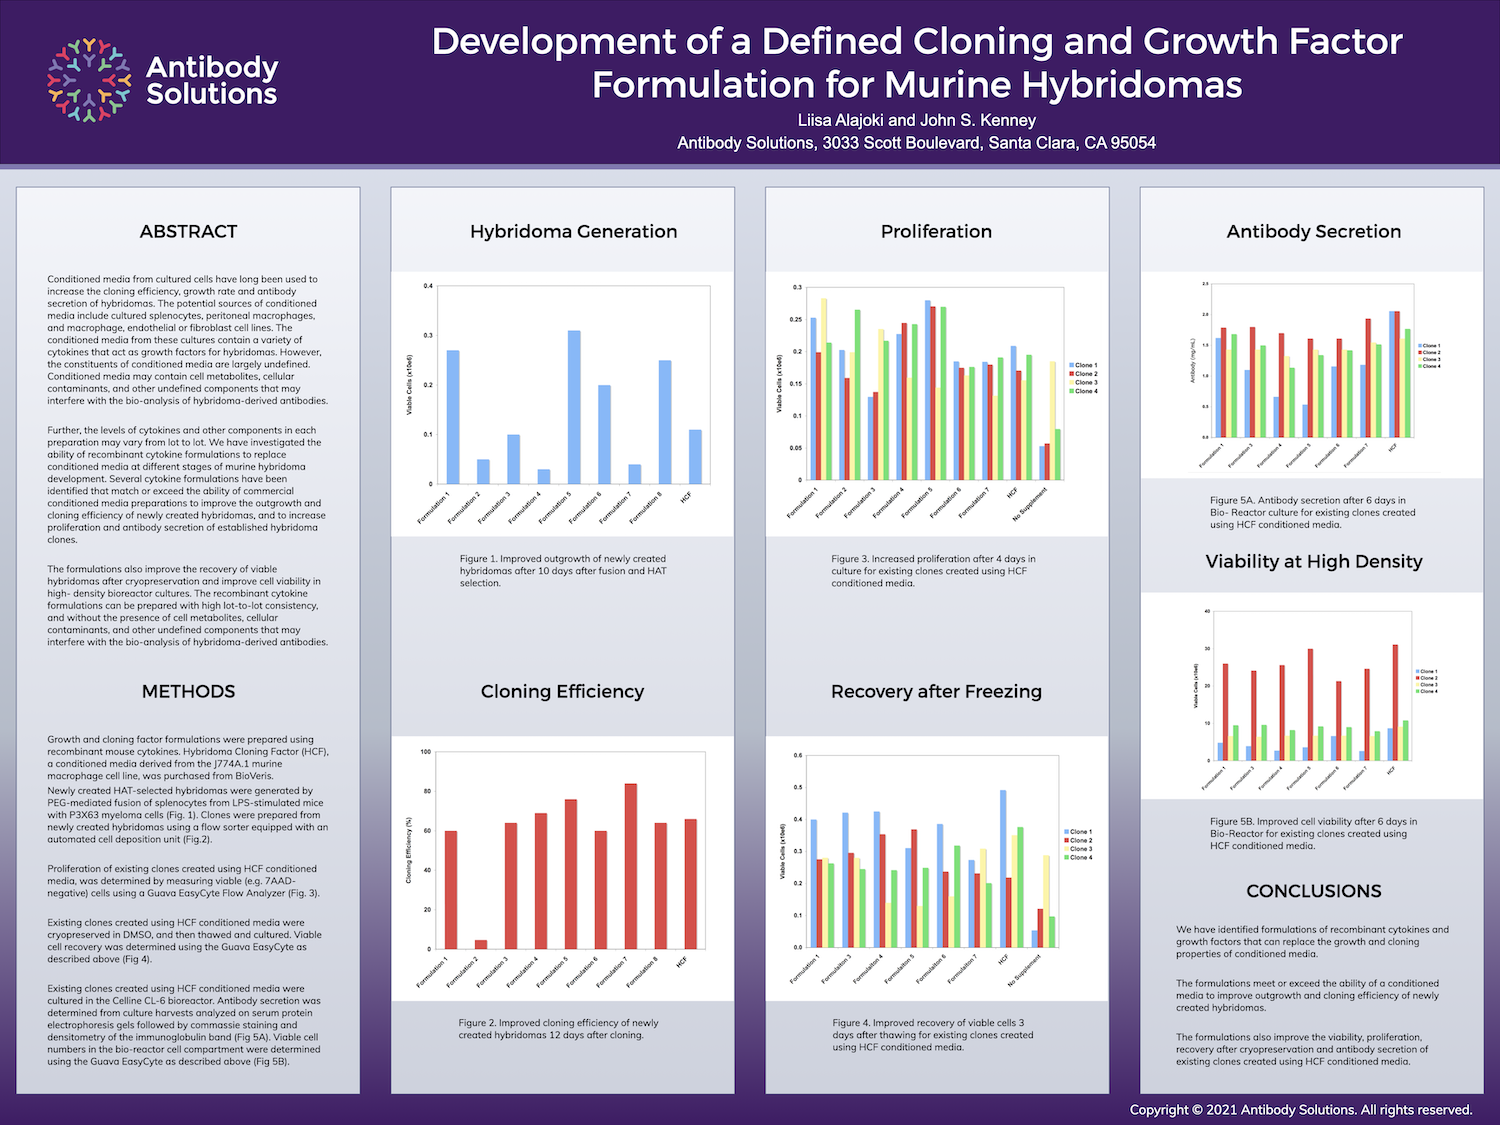 ANTI-21-002-Development of Defined Cloning Poster